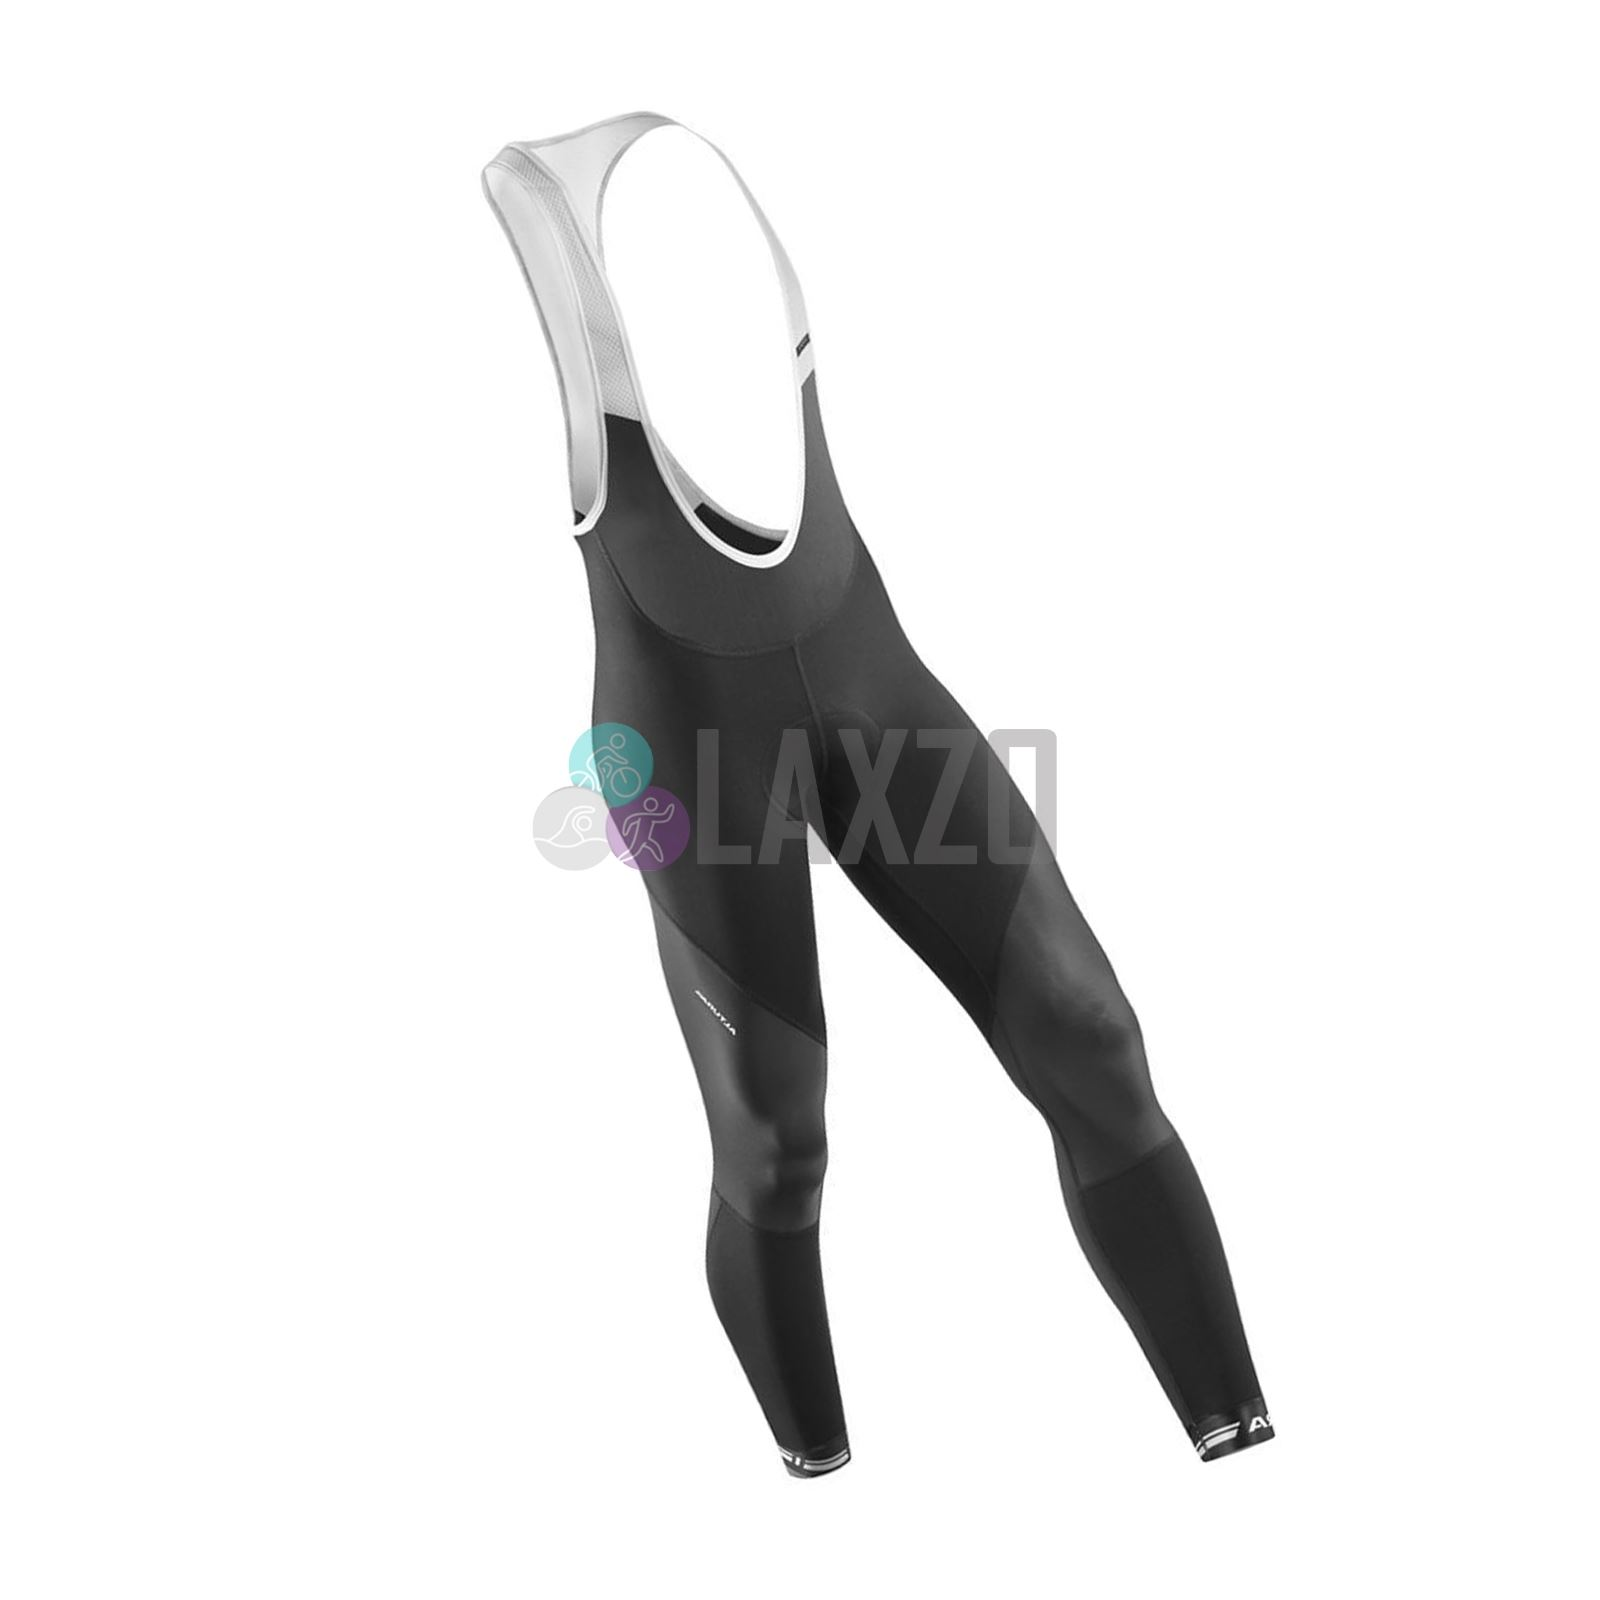 a6ea6a9f1 2017 Altura Podium Elite Thermo Breathable Padded Cycling Bib Tights ...